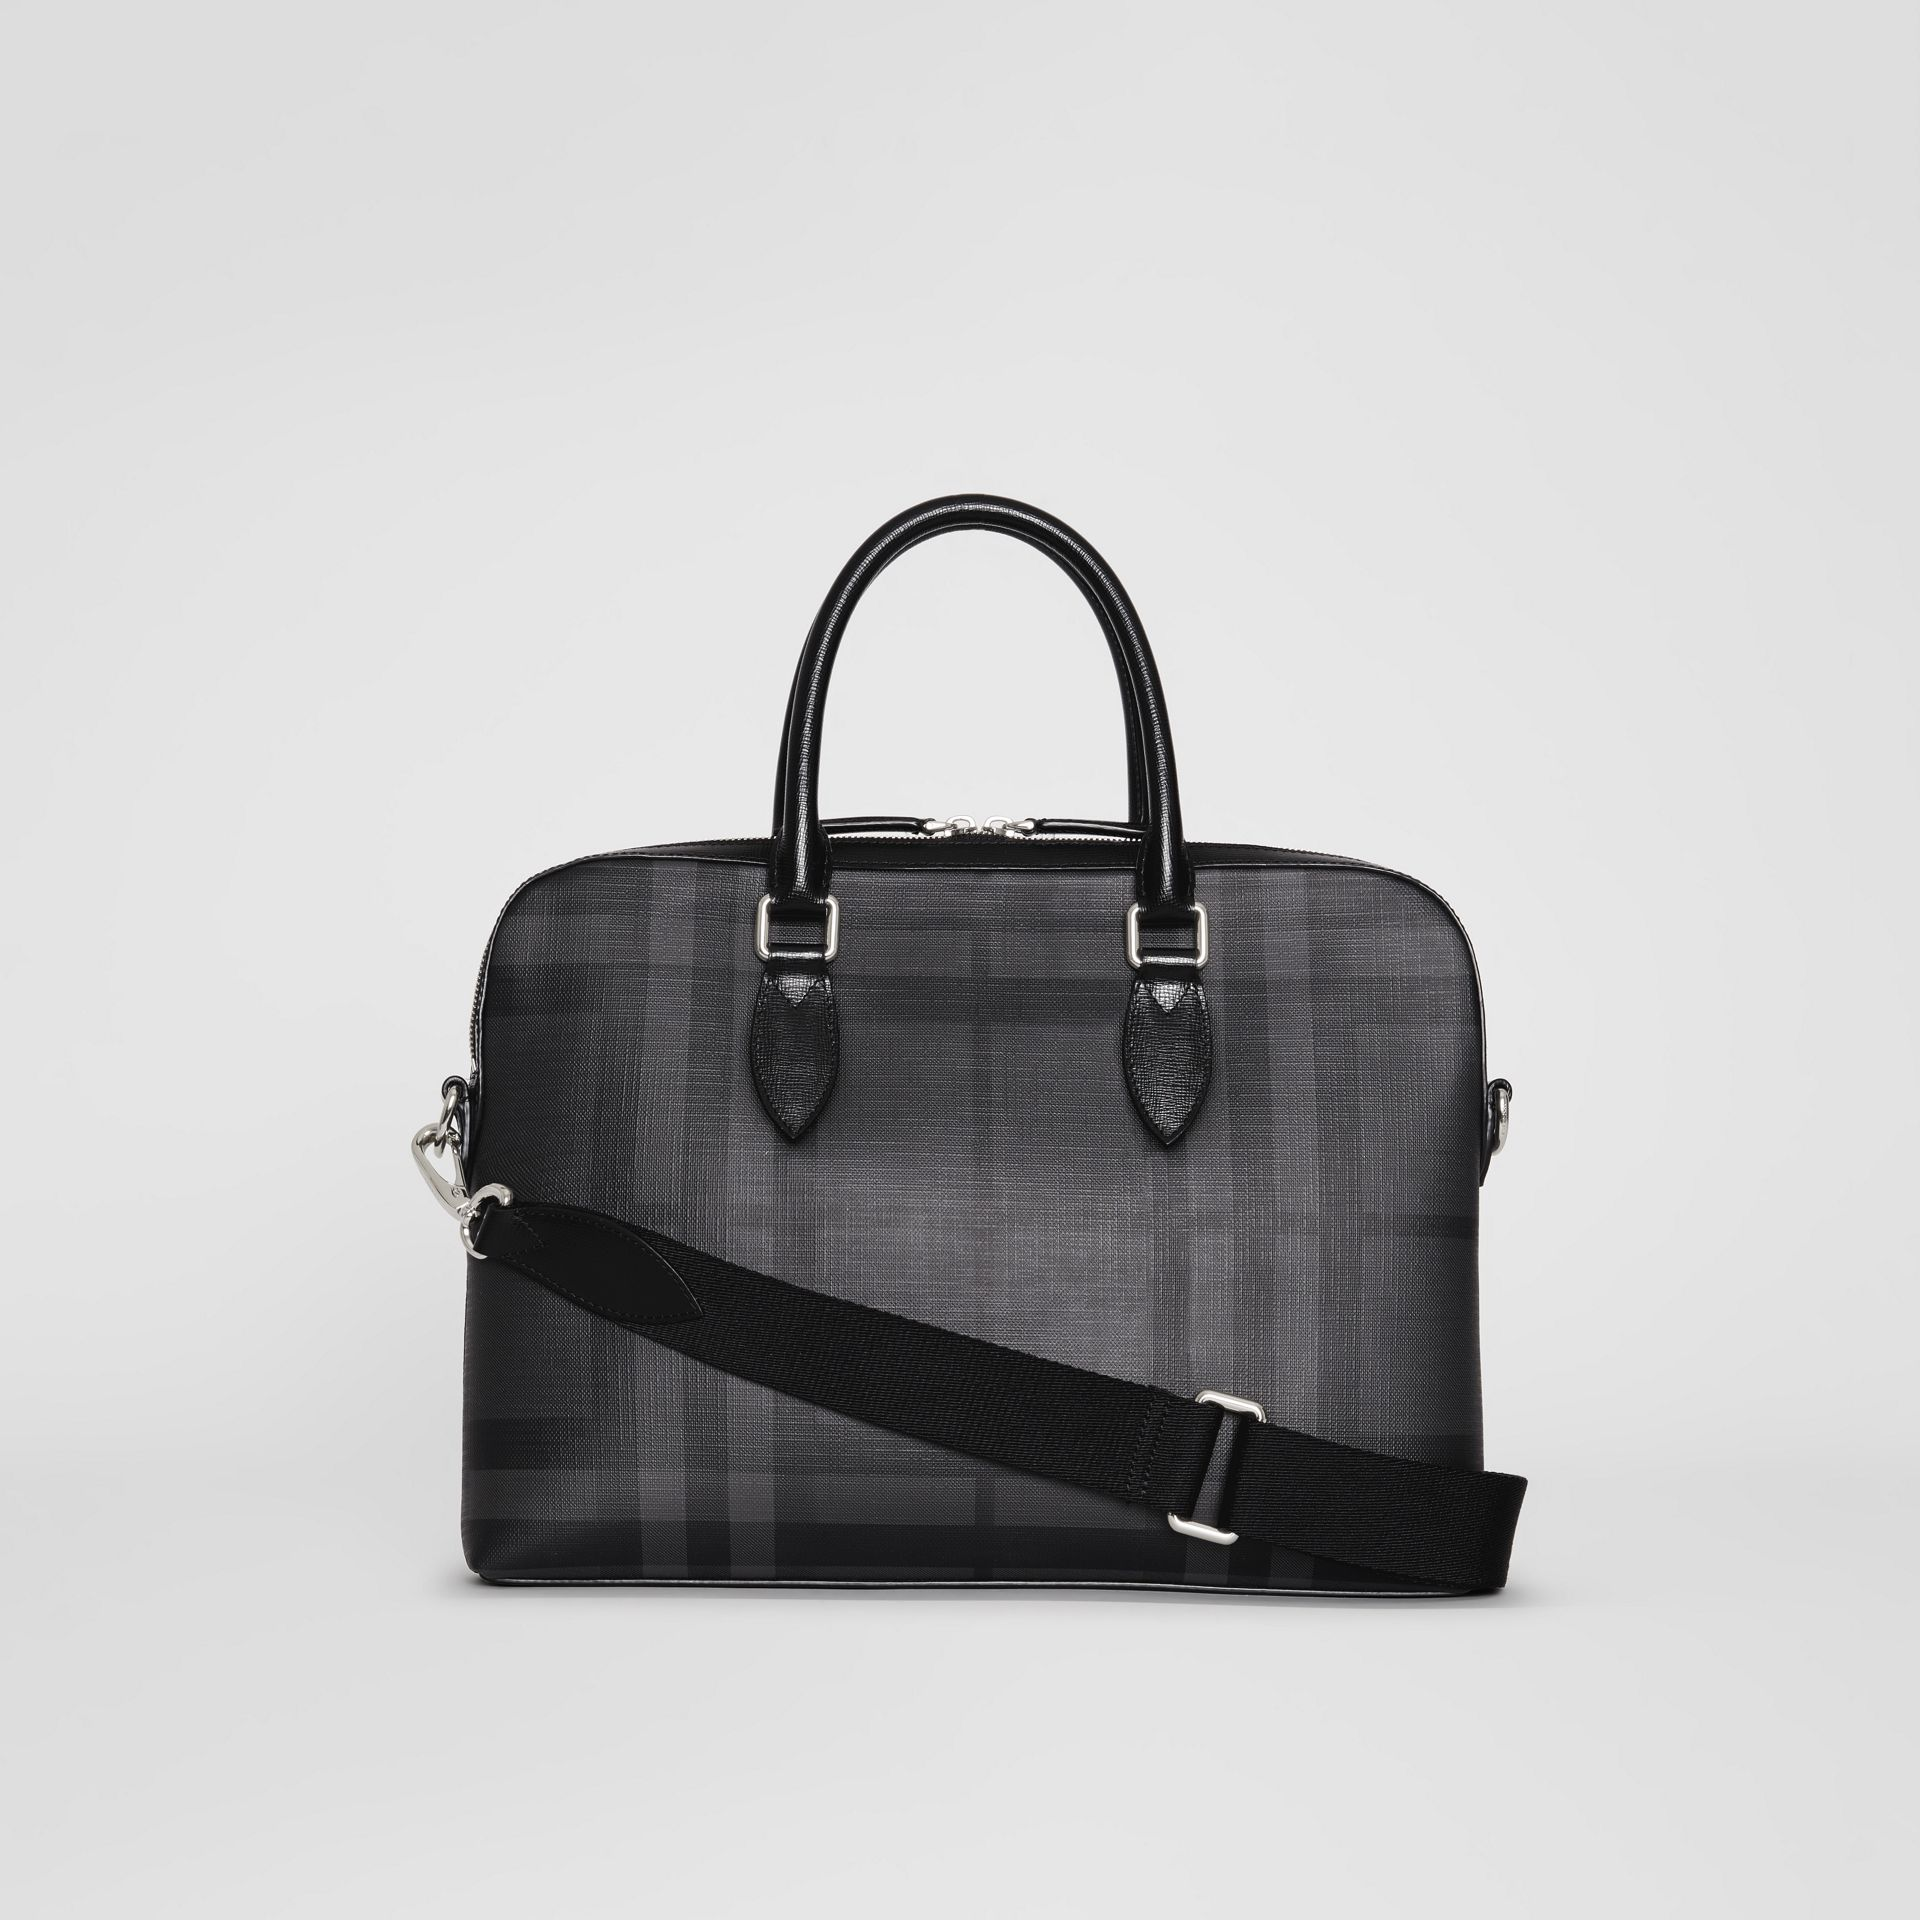 Attaché-case medium à motif London check avec éléments en cuir (Anthracite/noir) - Homme | Burberry Canada - photo de la galerie 7